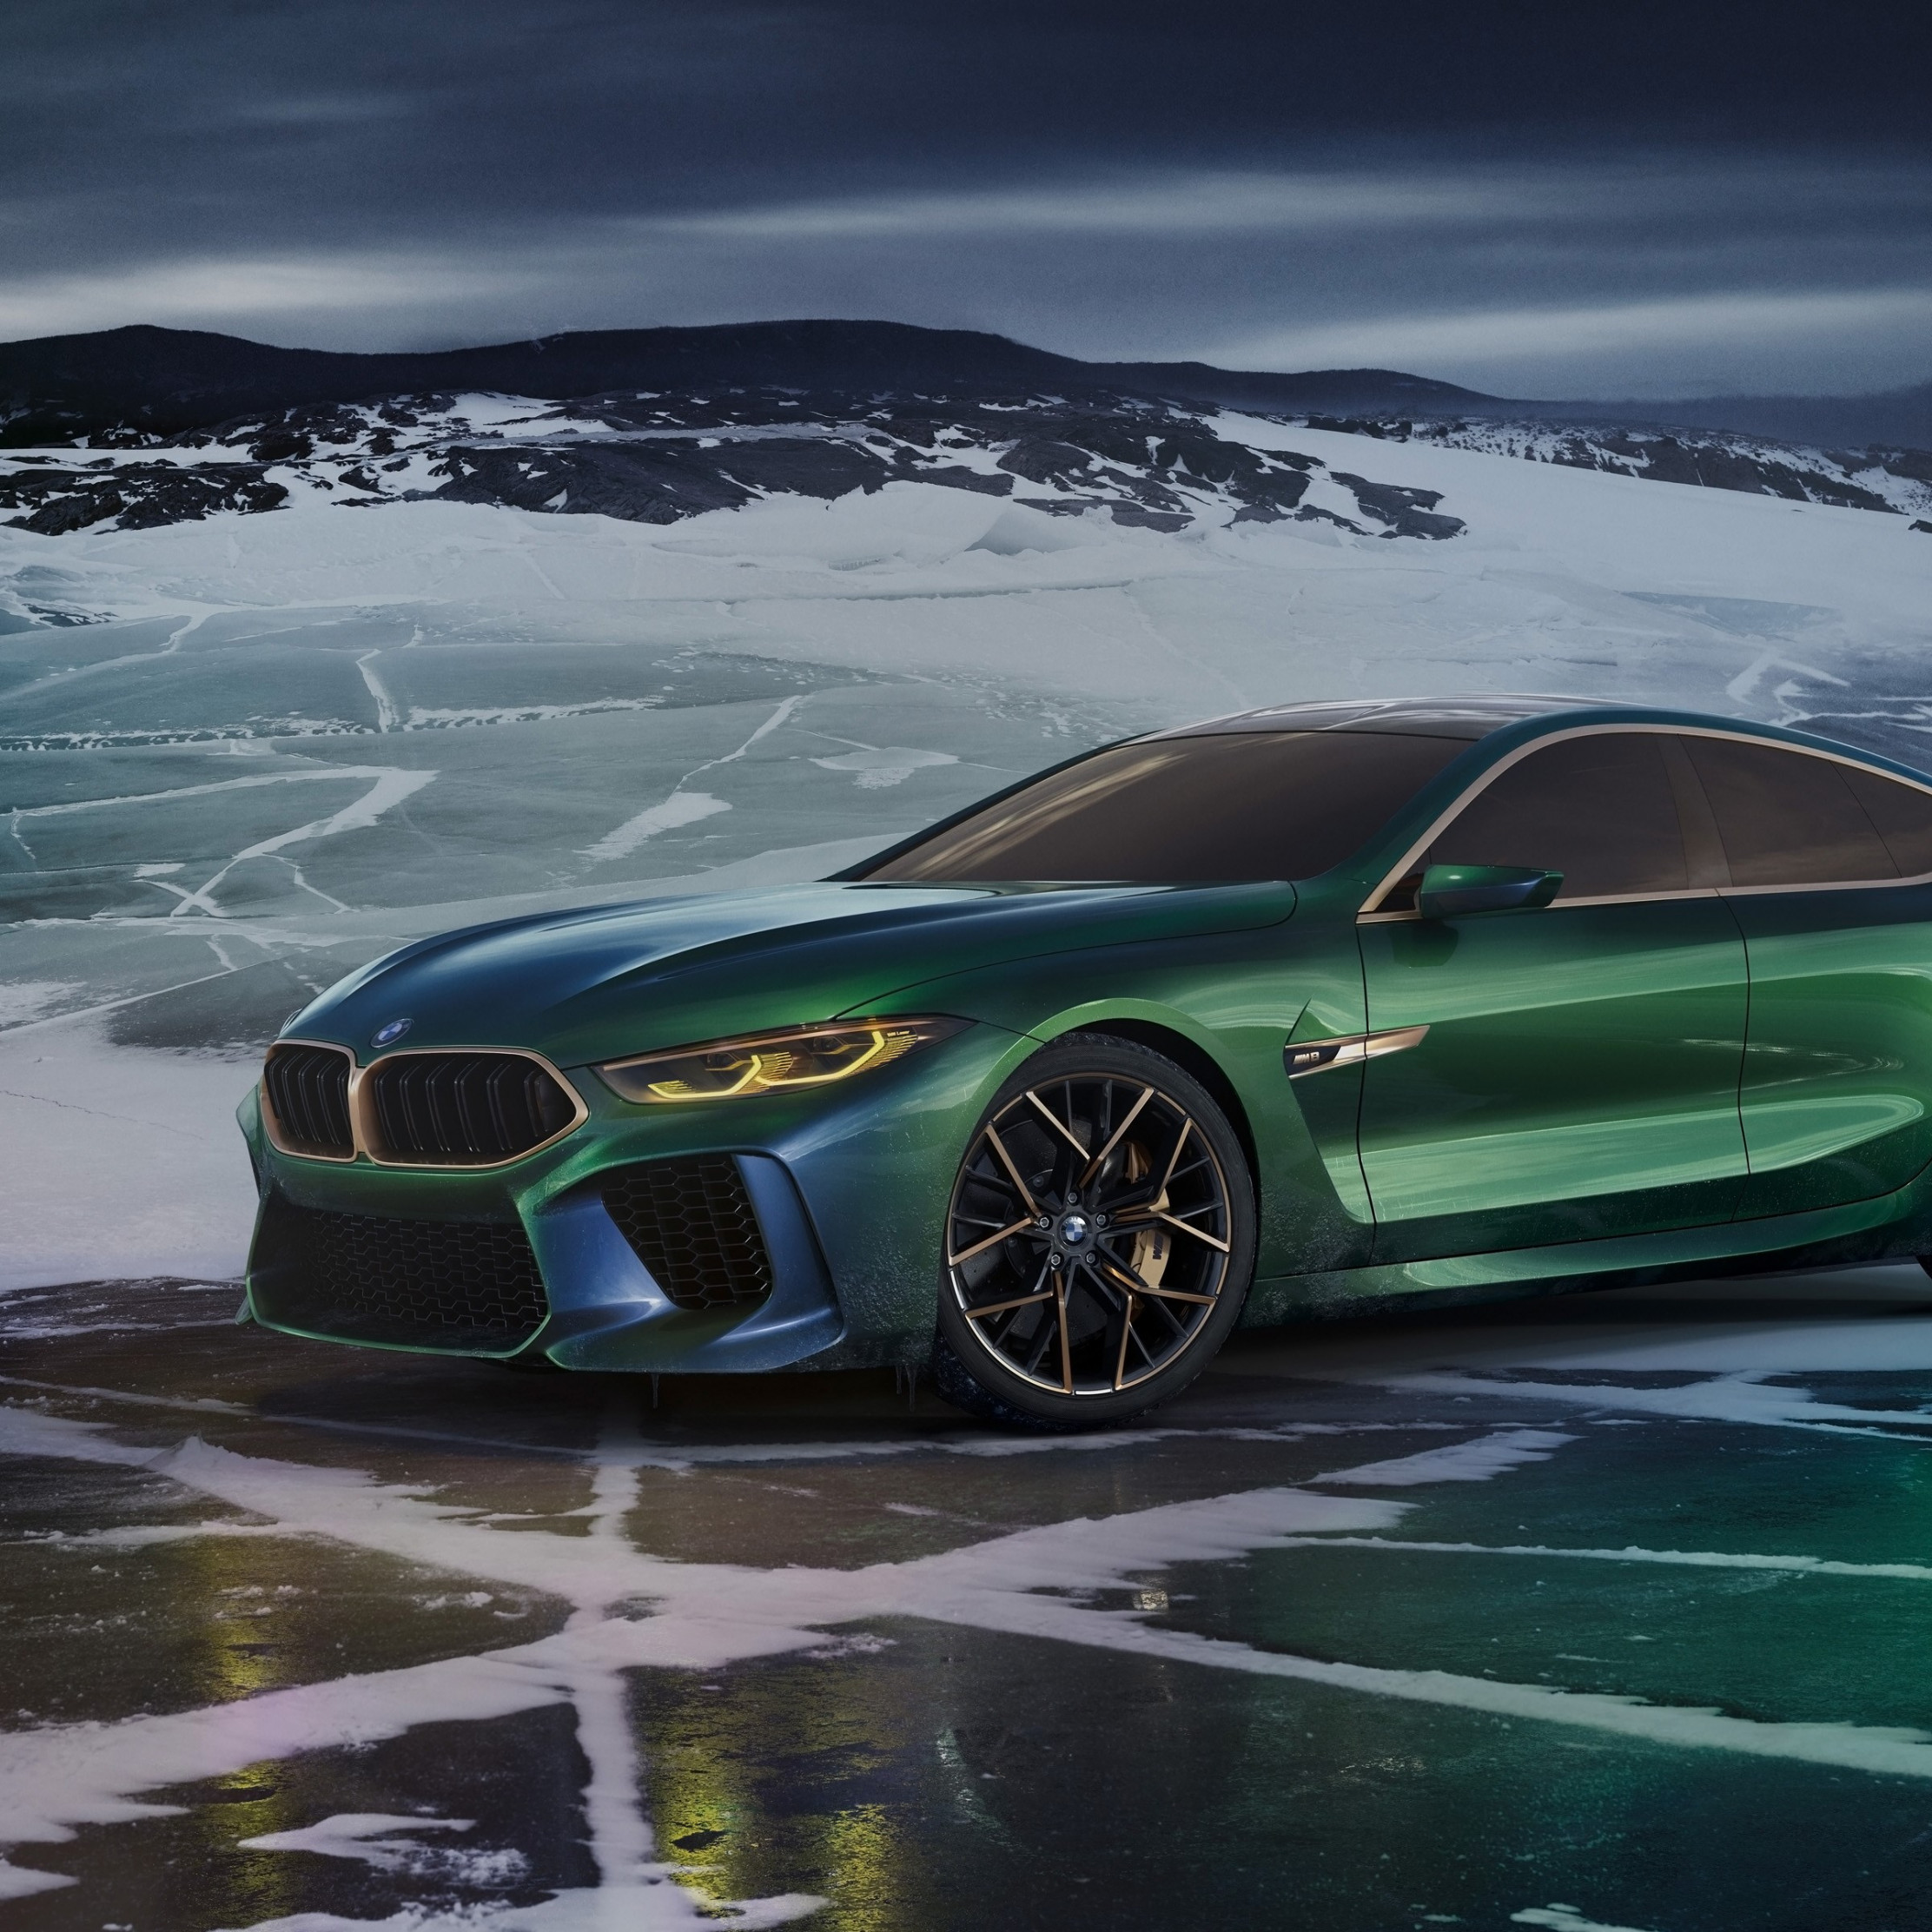 BMW Concept M8 Gran Coupe 2018 wallpaper 2224x2224